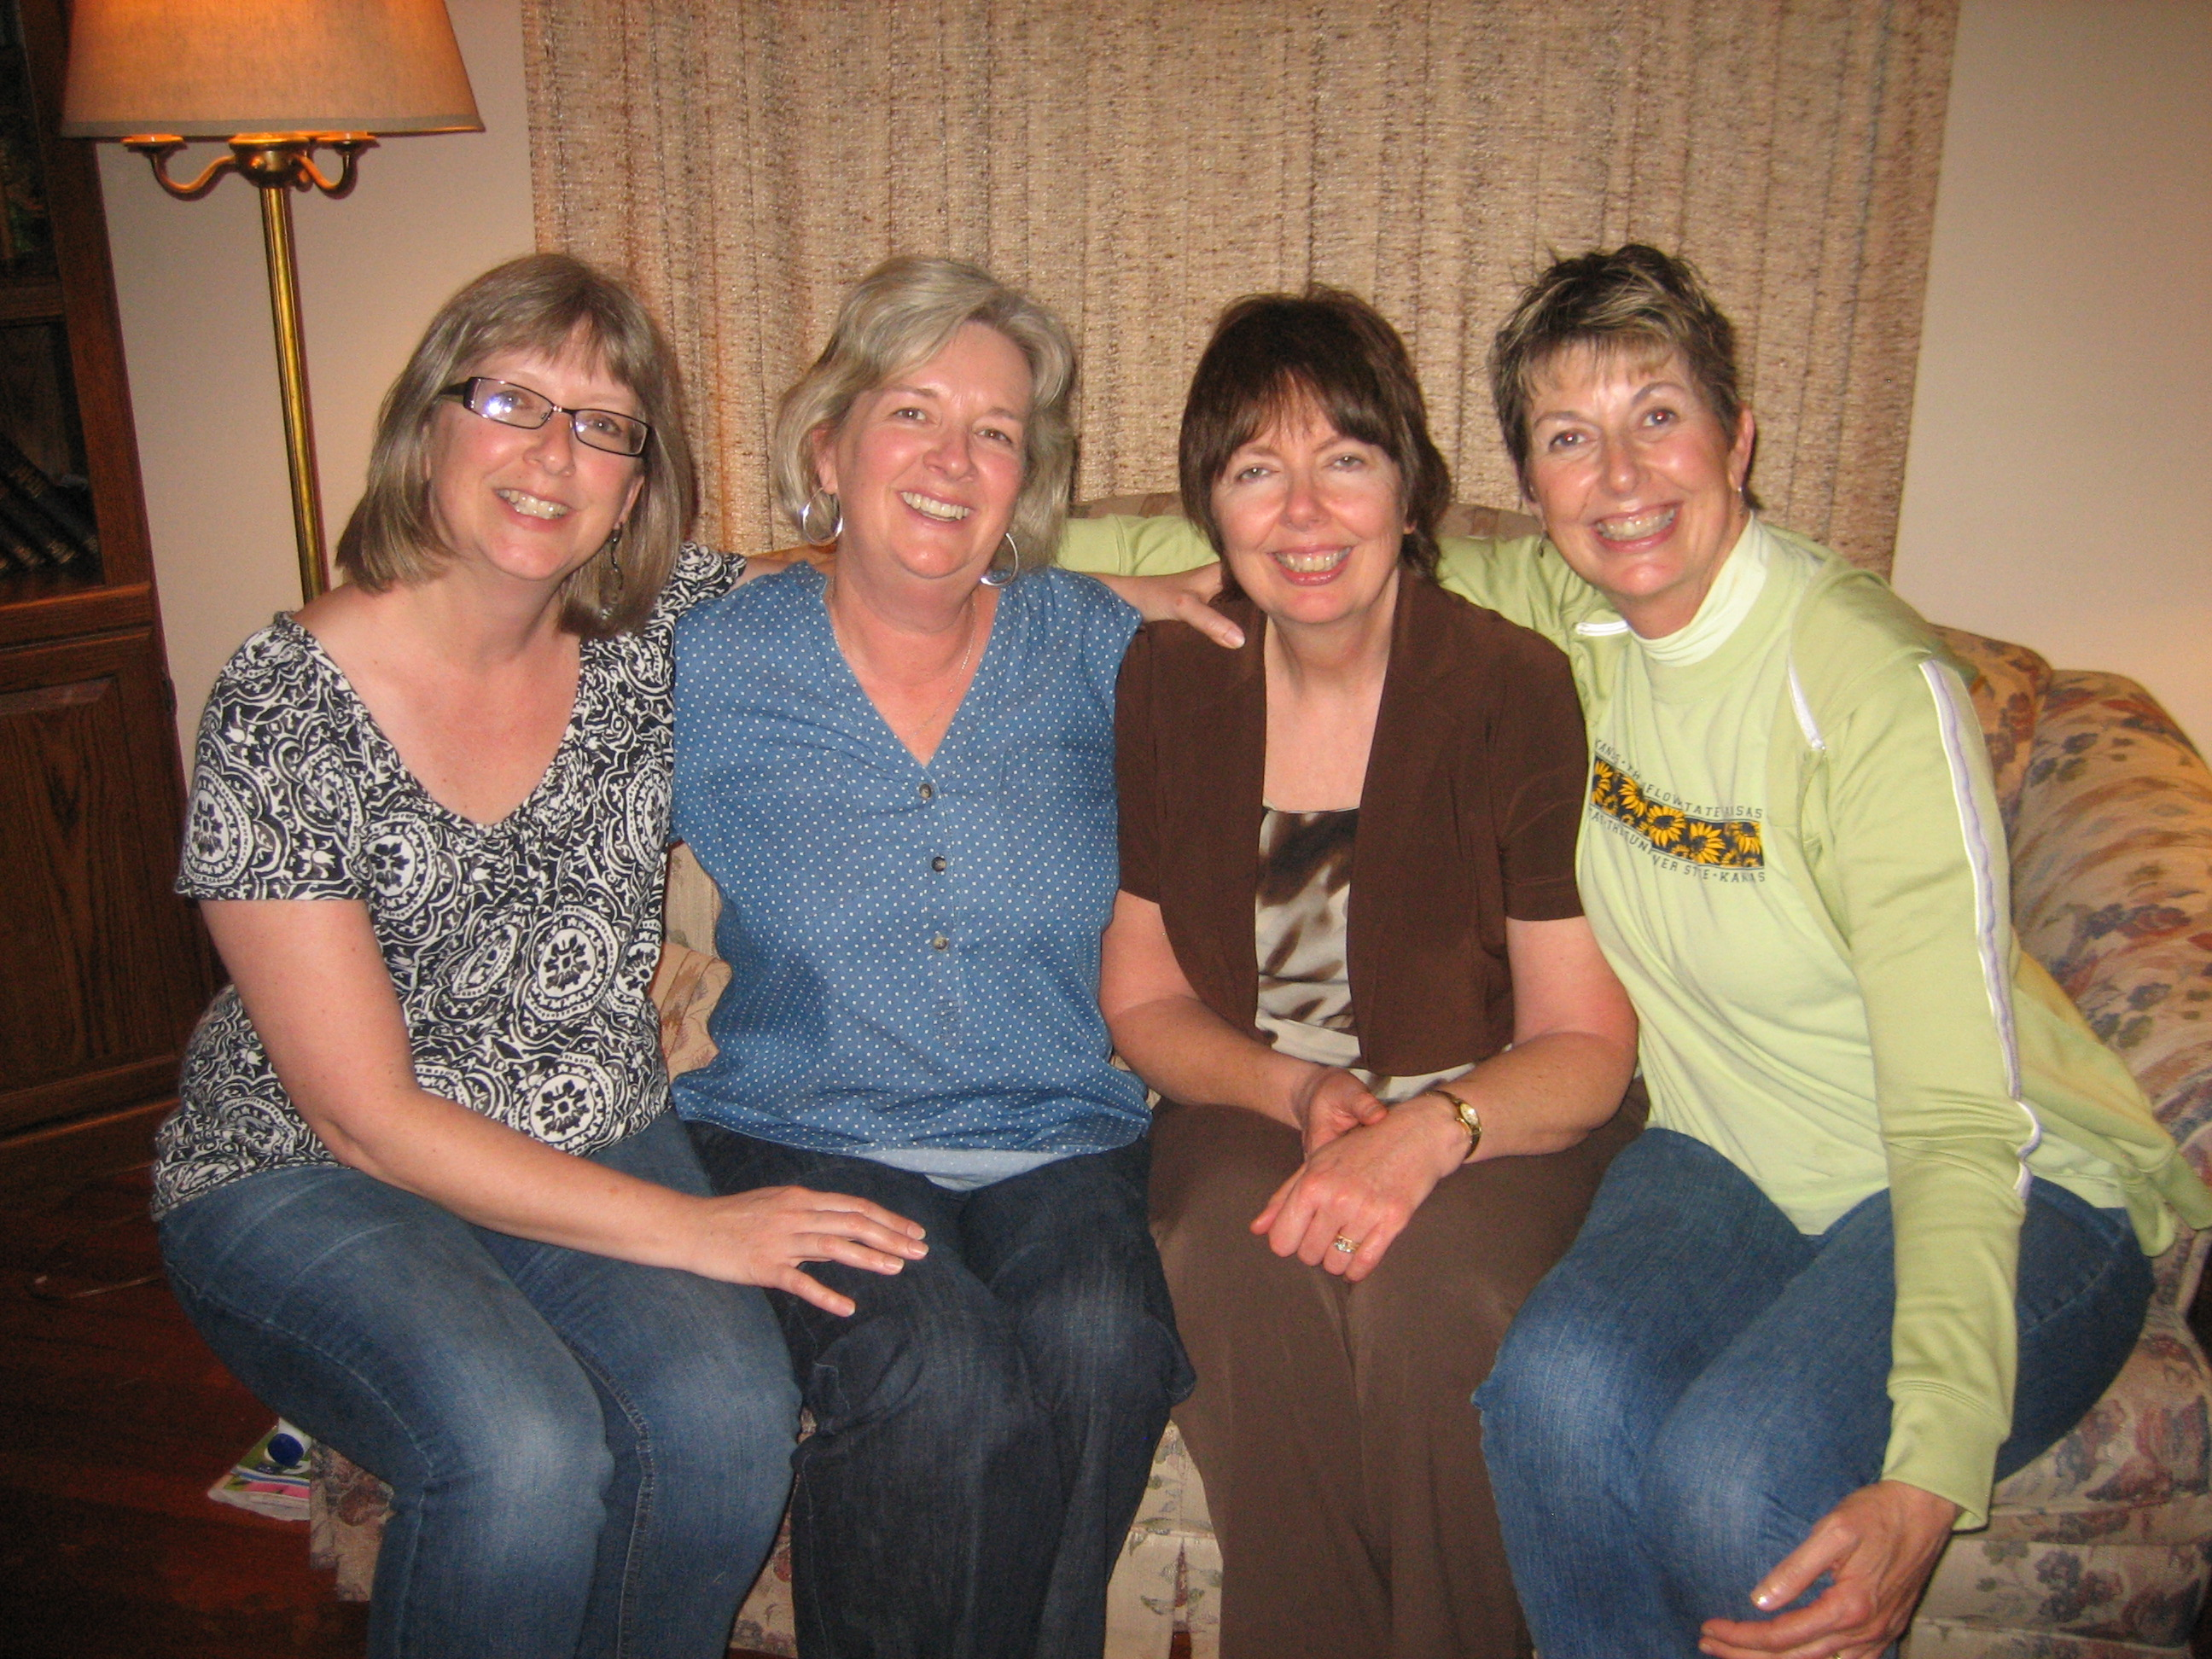 Janet, me, Cheryl, Connie